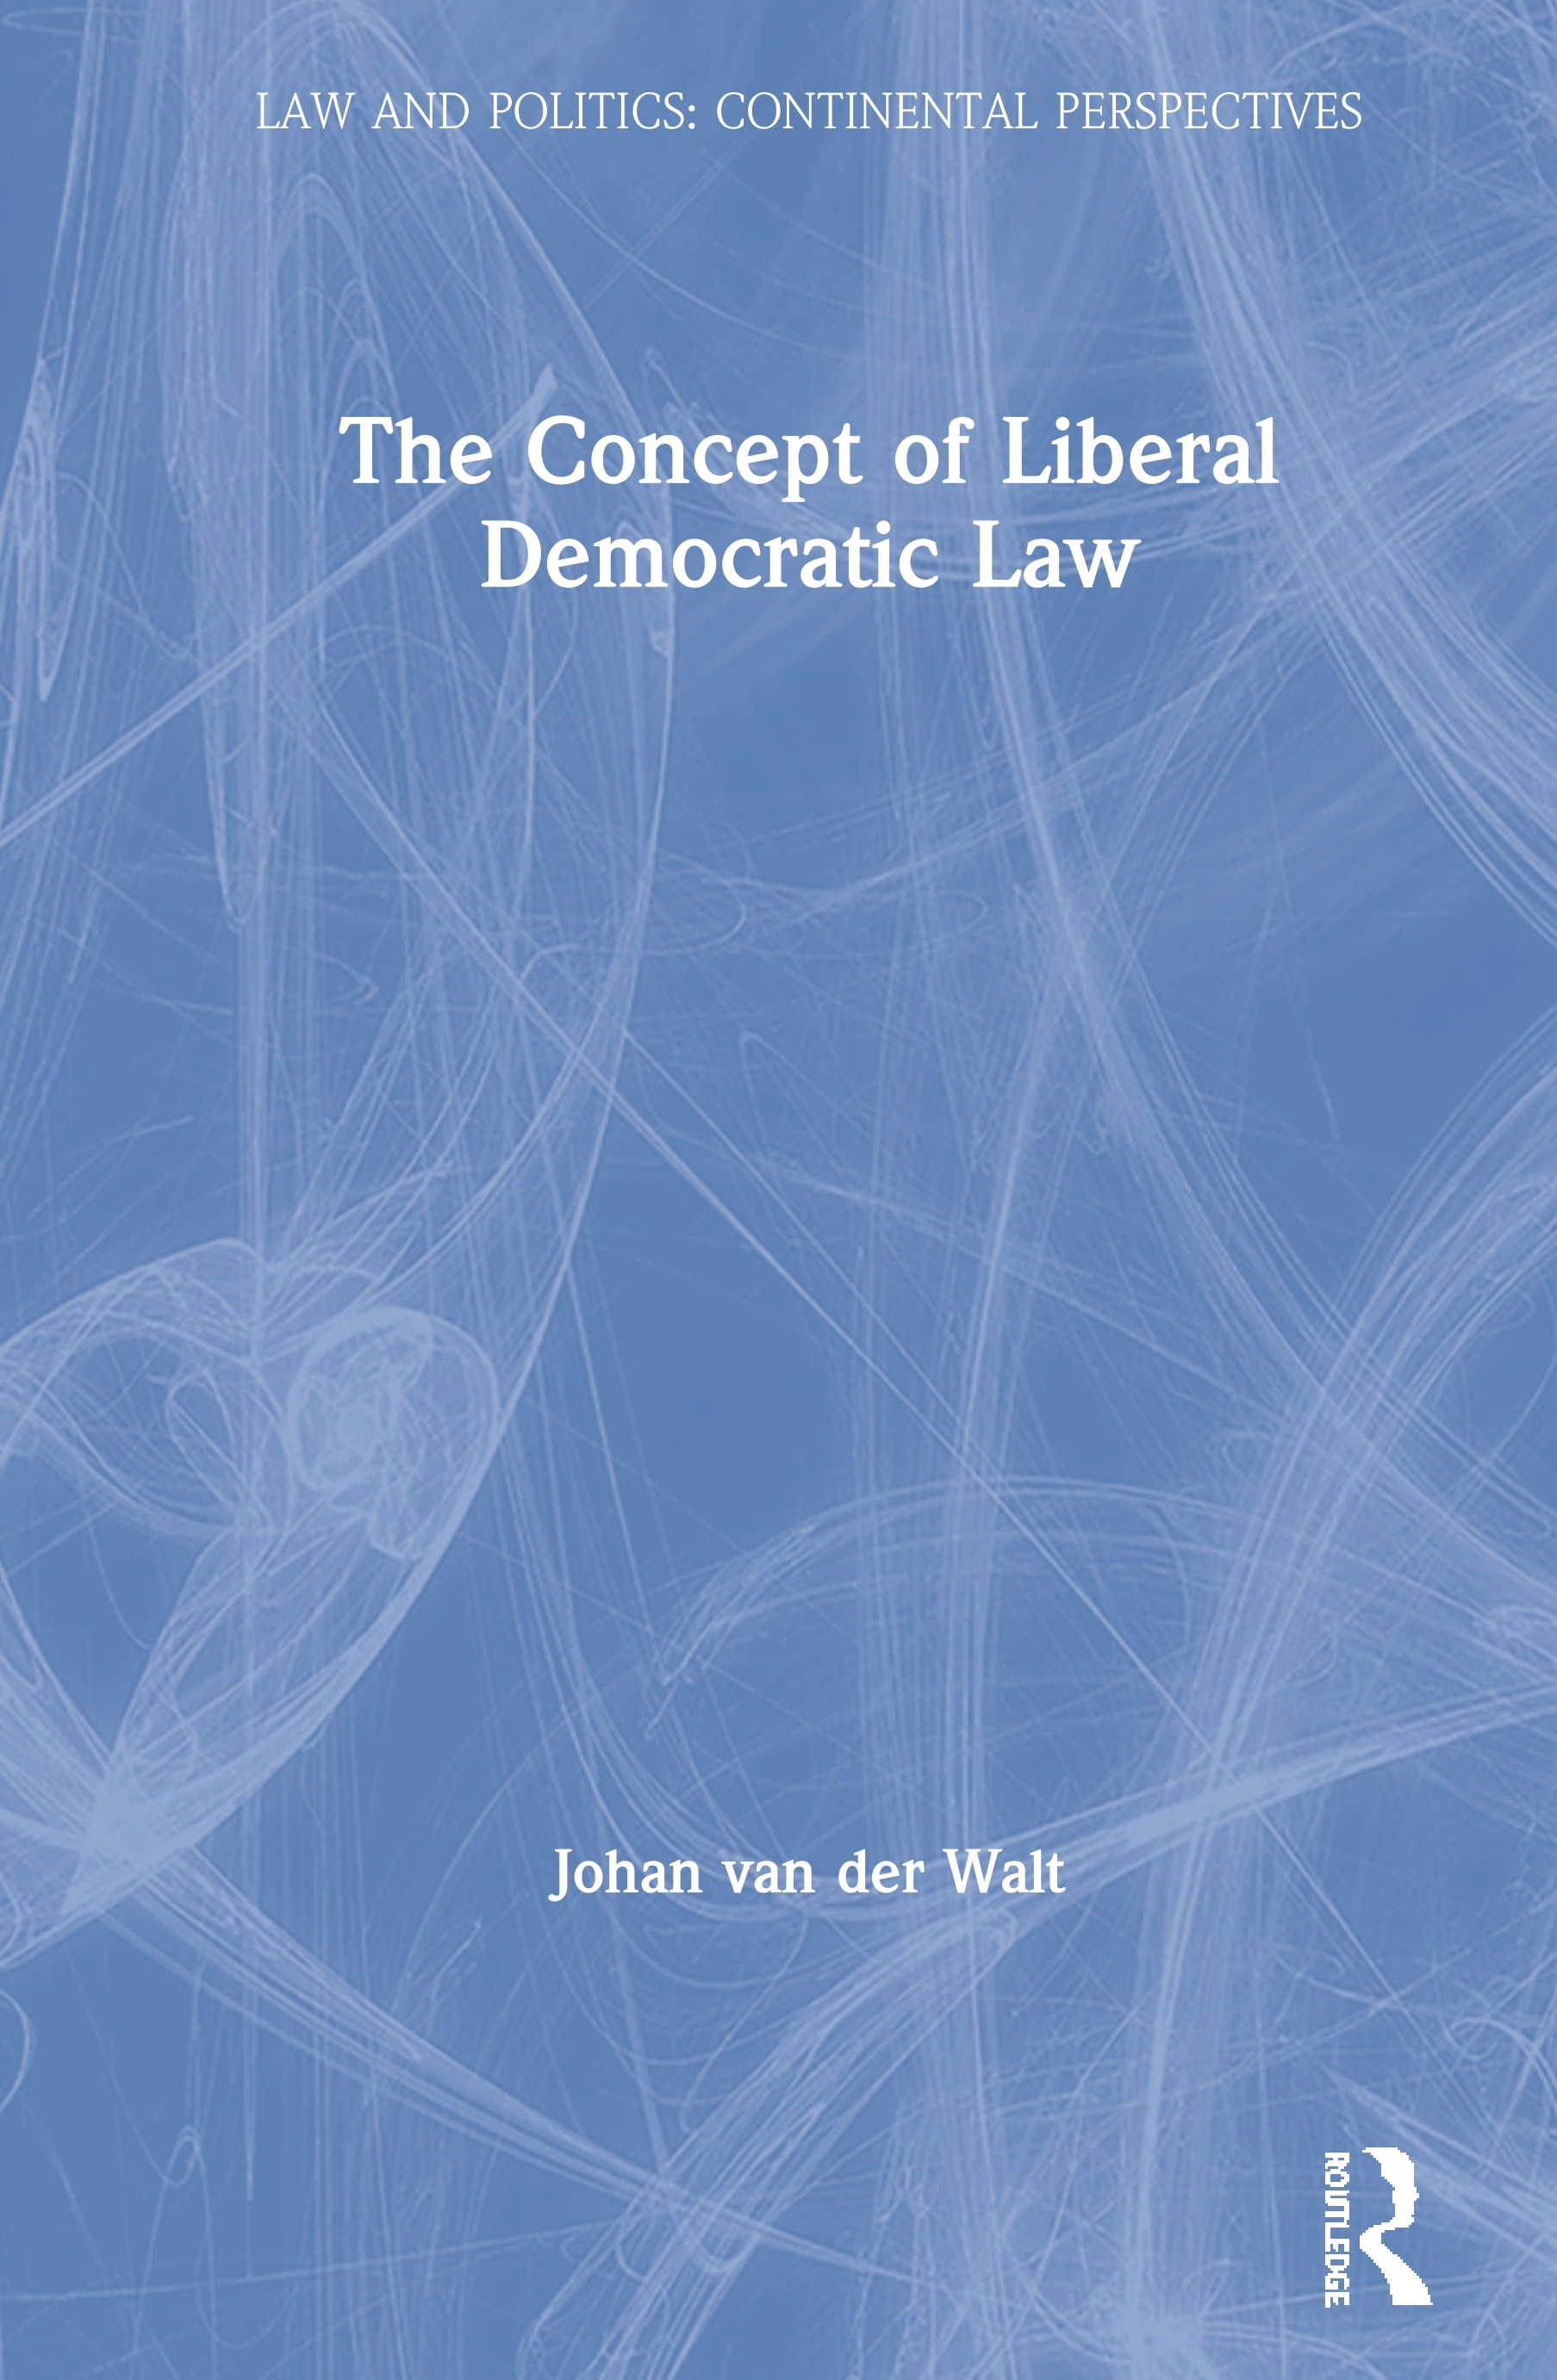 The Concept of Liberal Democratic Law